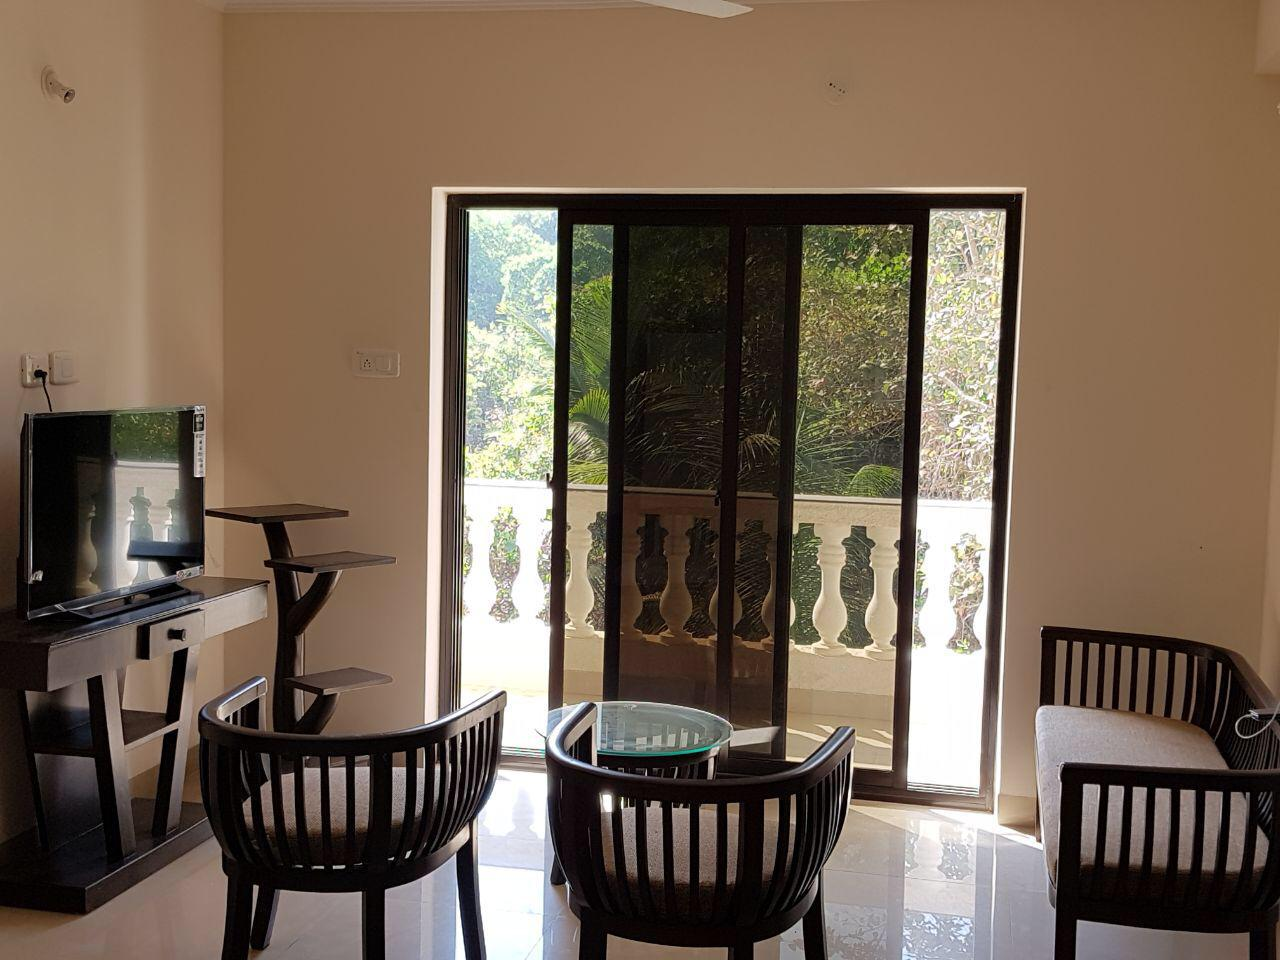 2 Bhk 95sqmt Furnished flat for Rent in Siolim, North-Goa (30k)